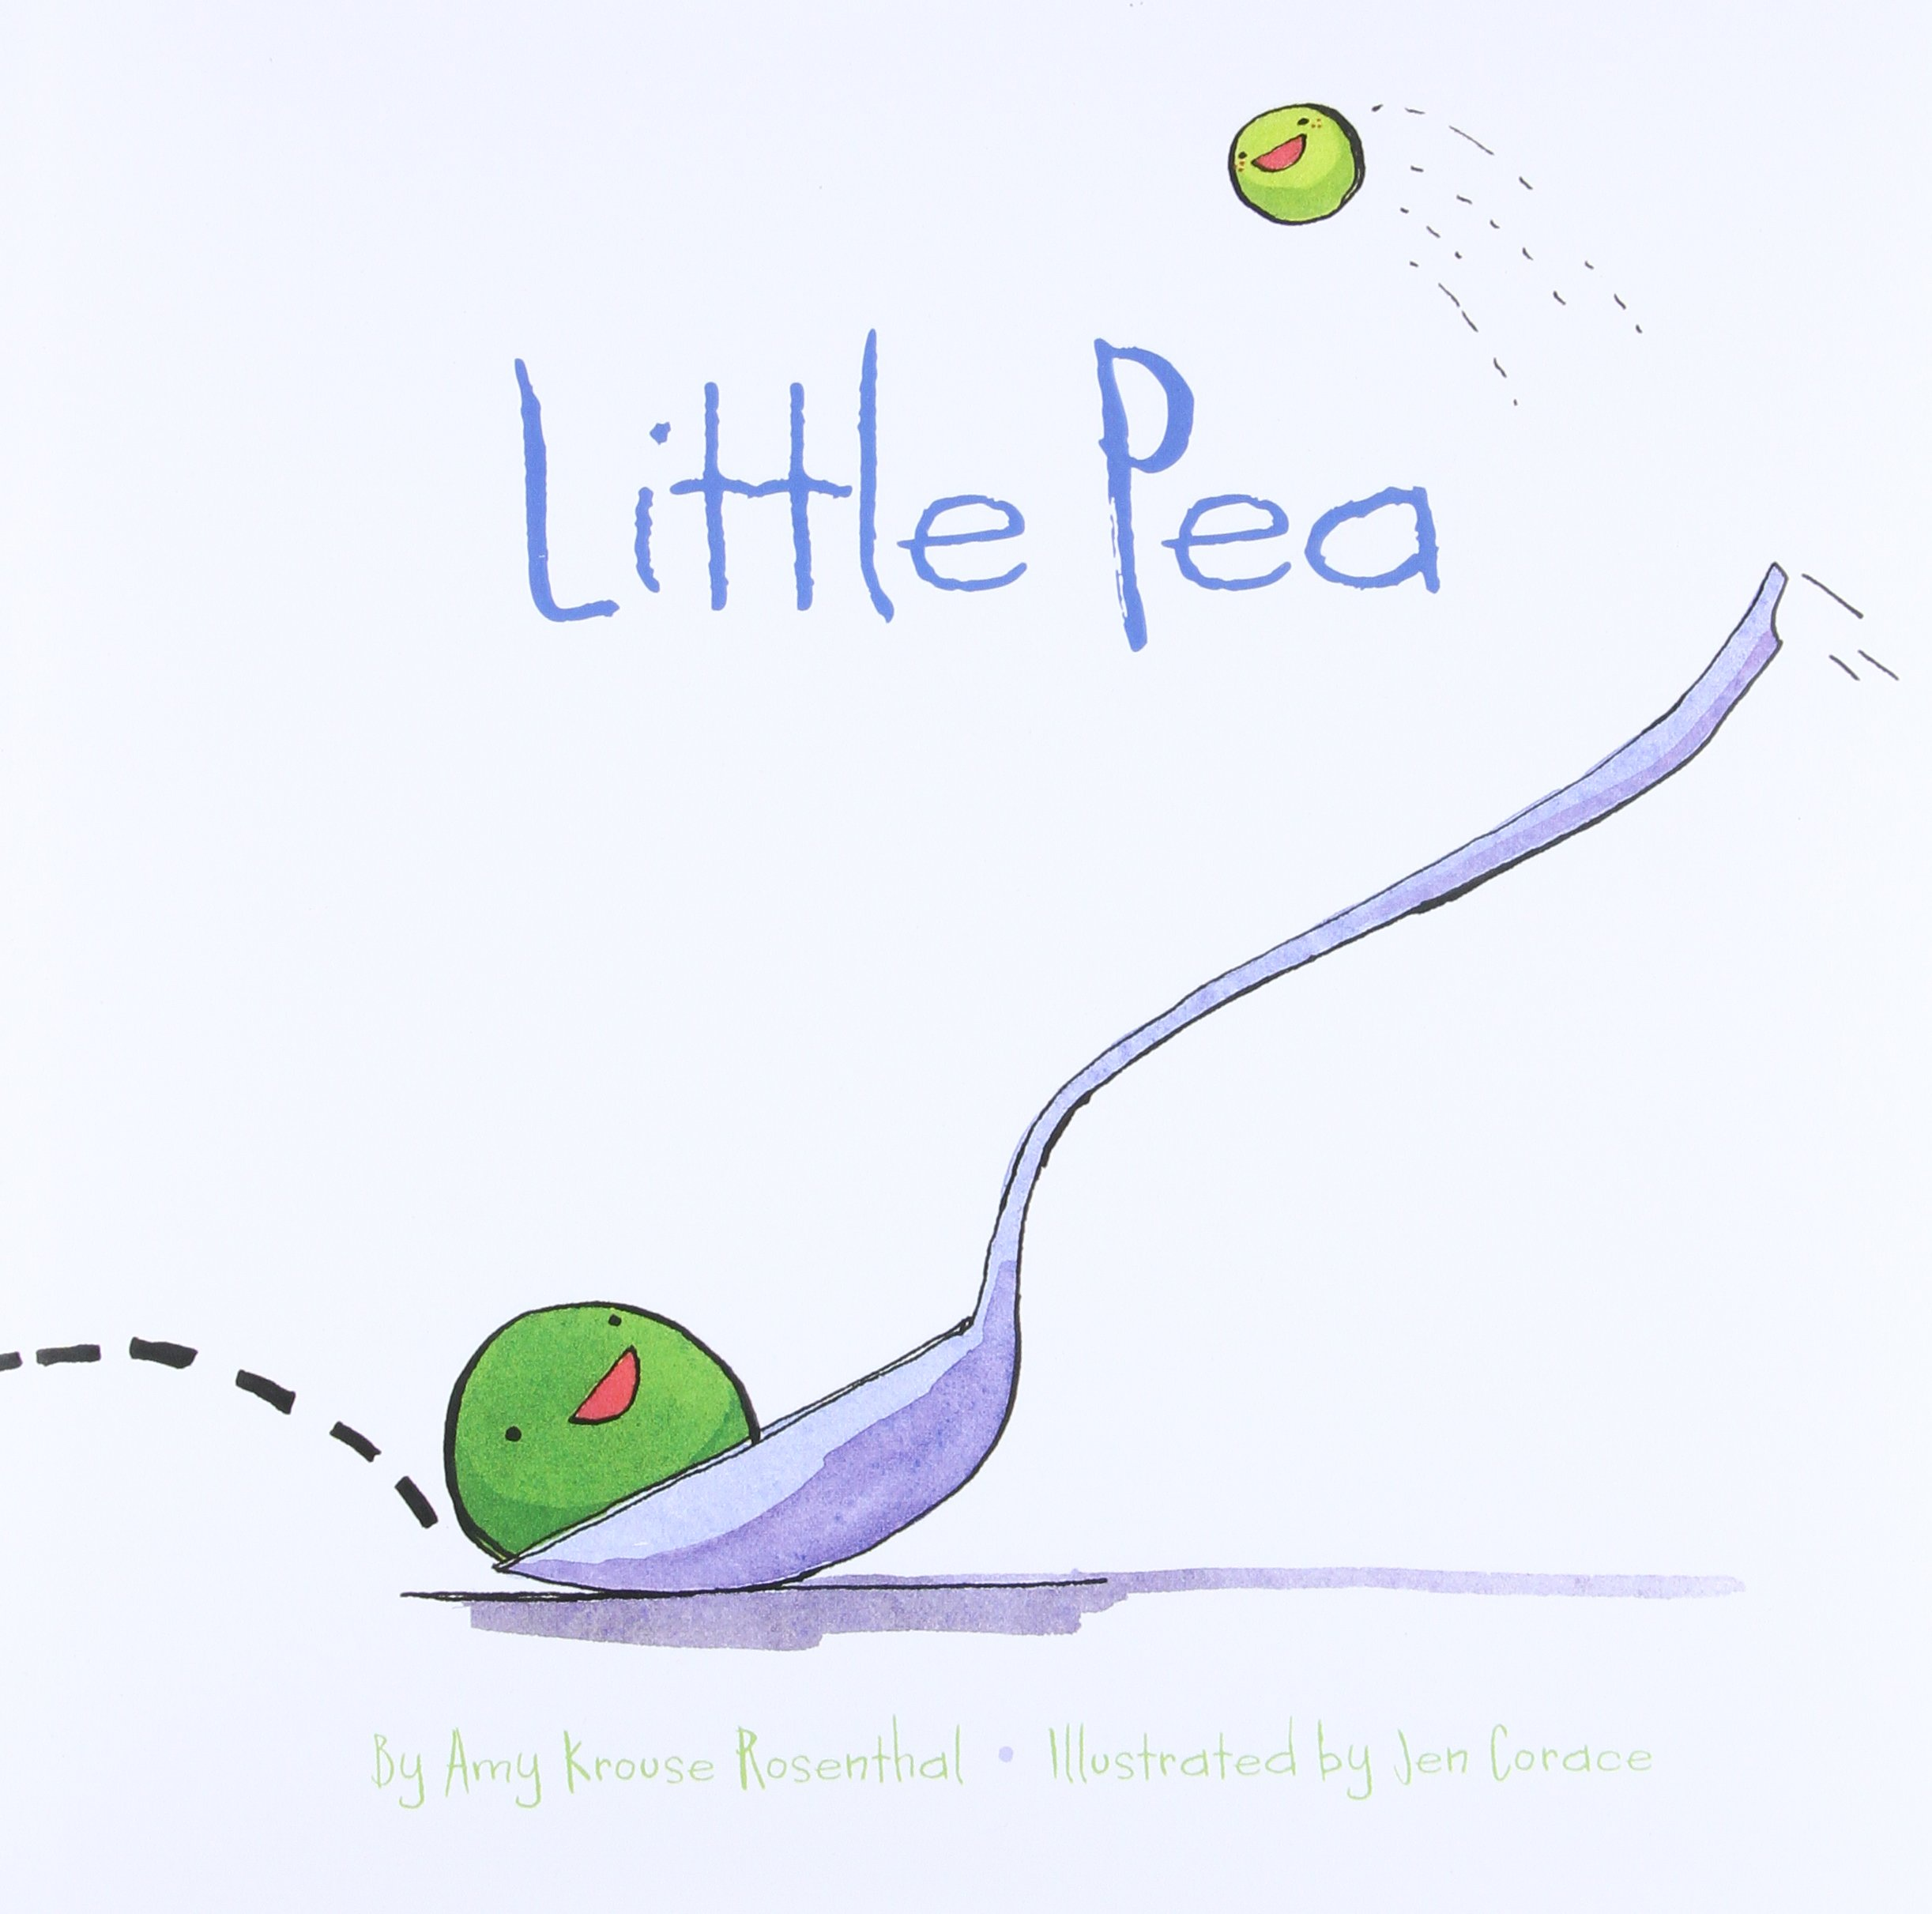 Little Pea Amy Krouse Rosenthal